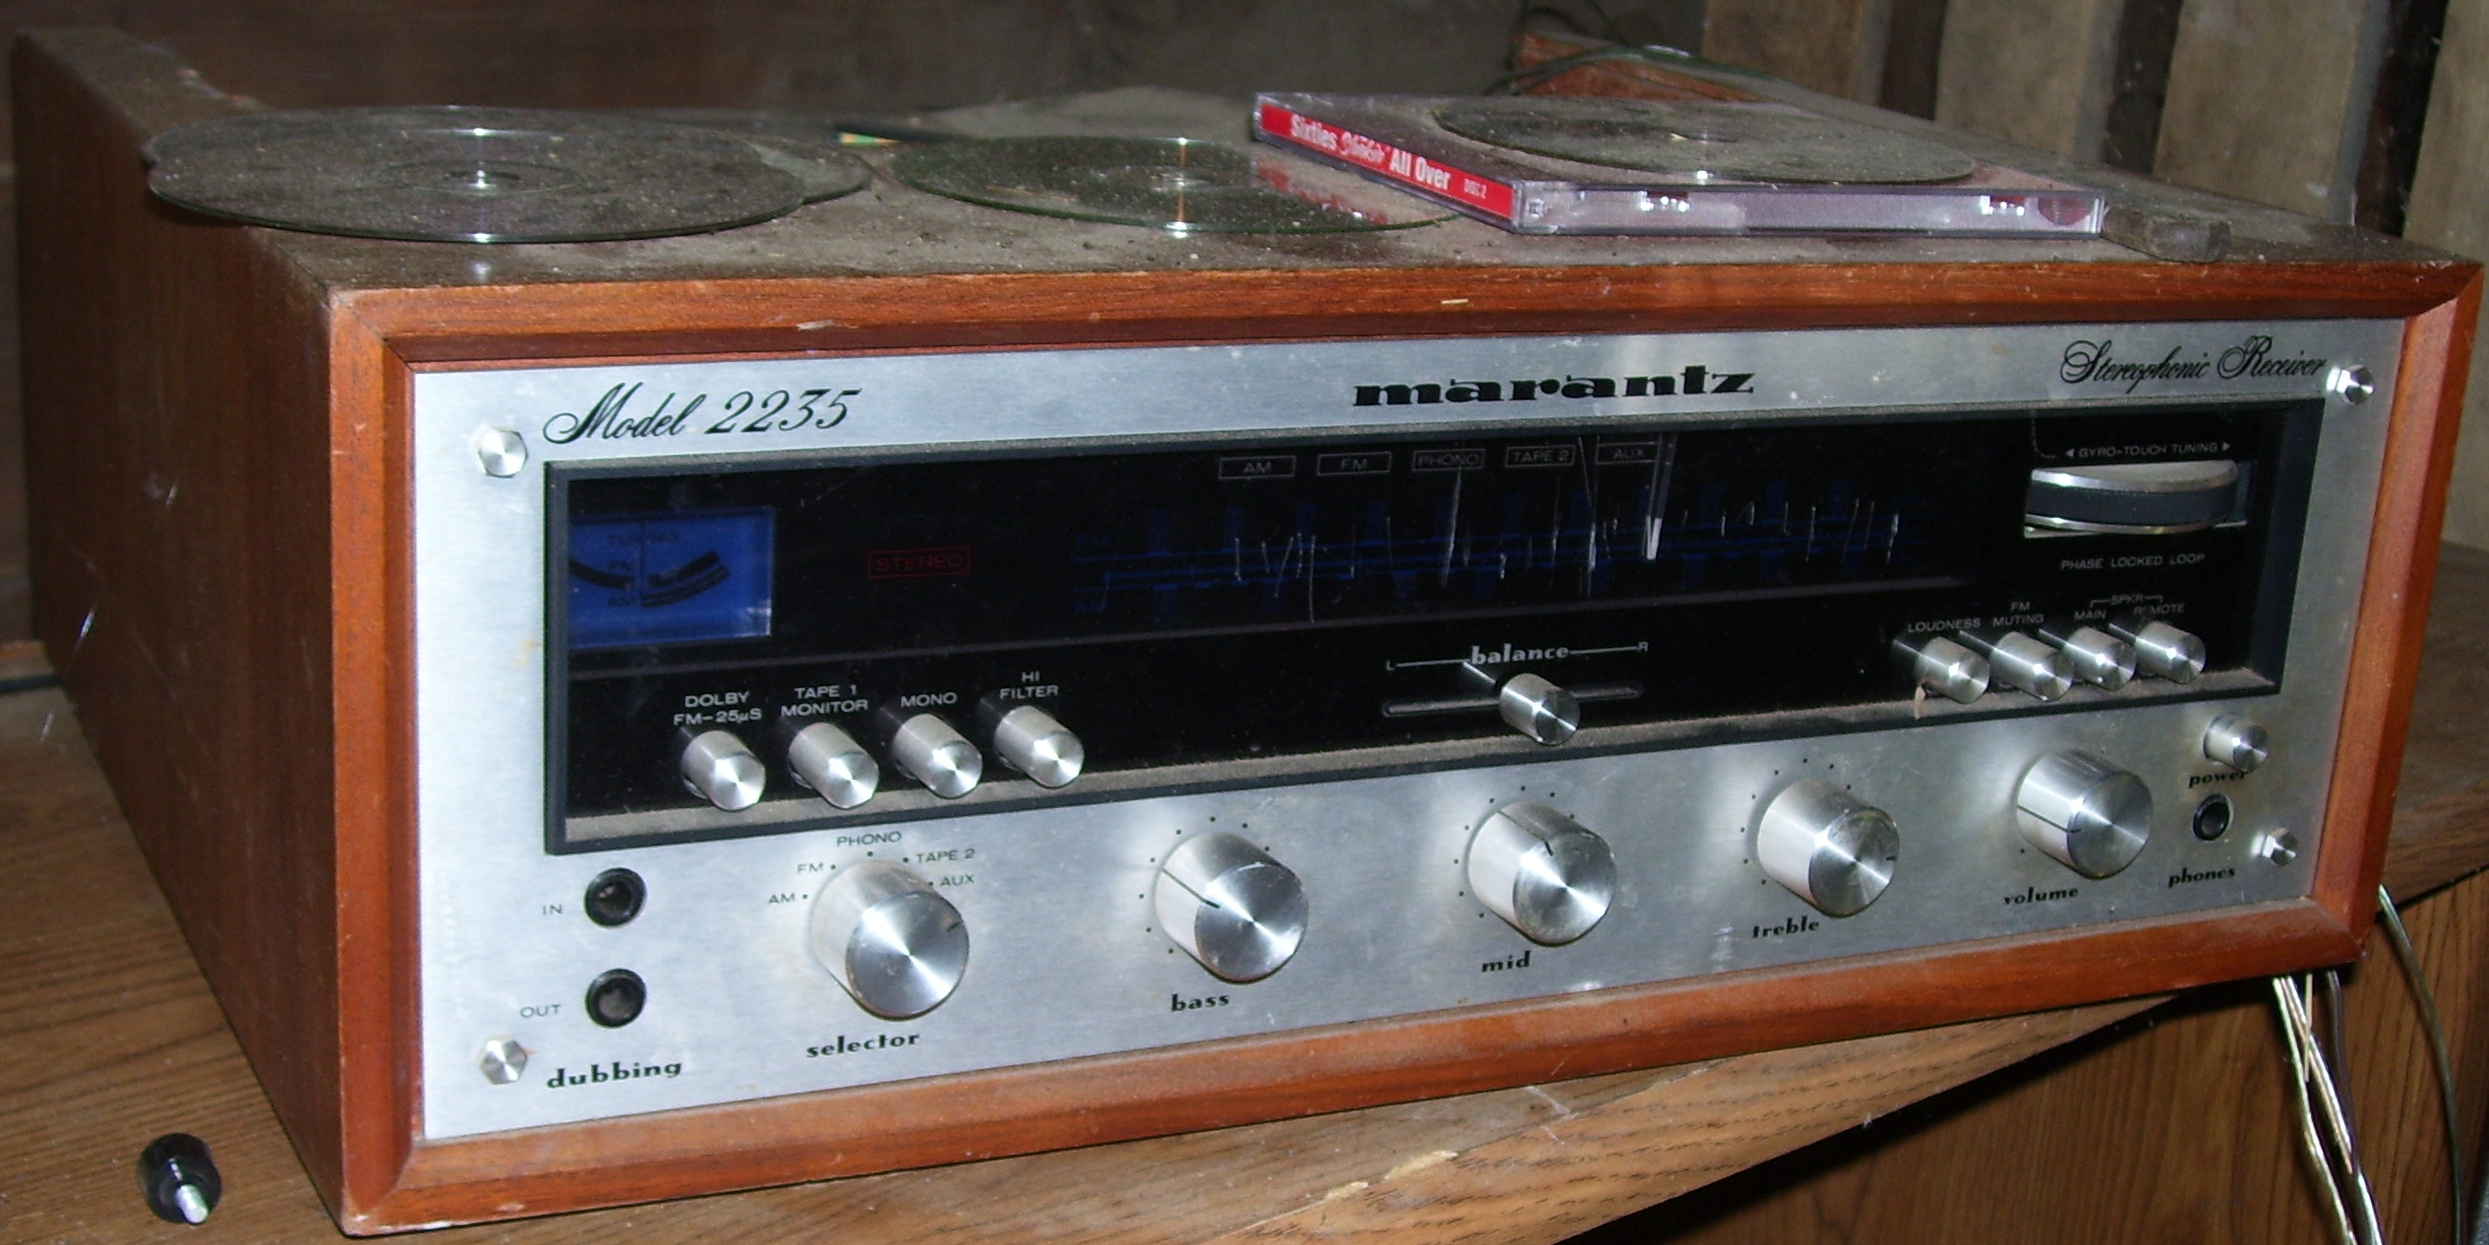 File:Marantz Model 2235.jpg